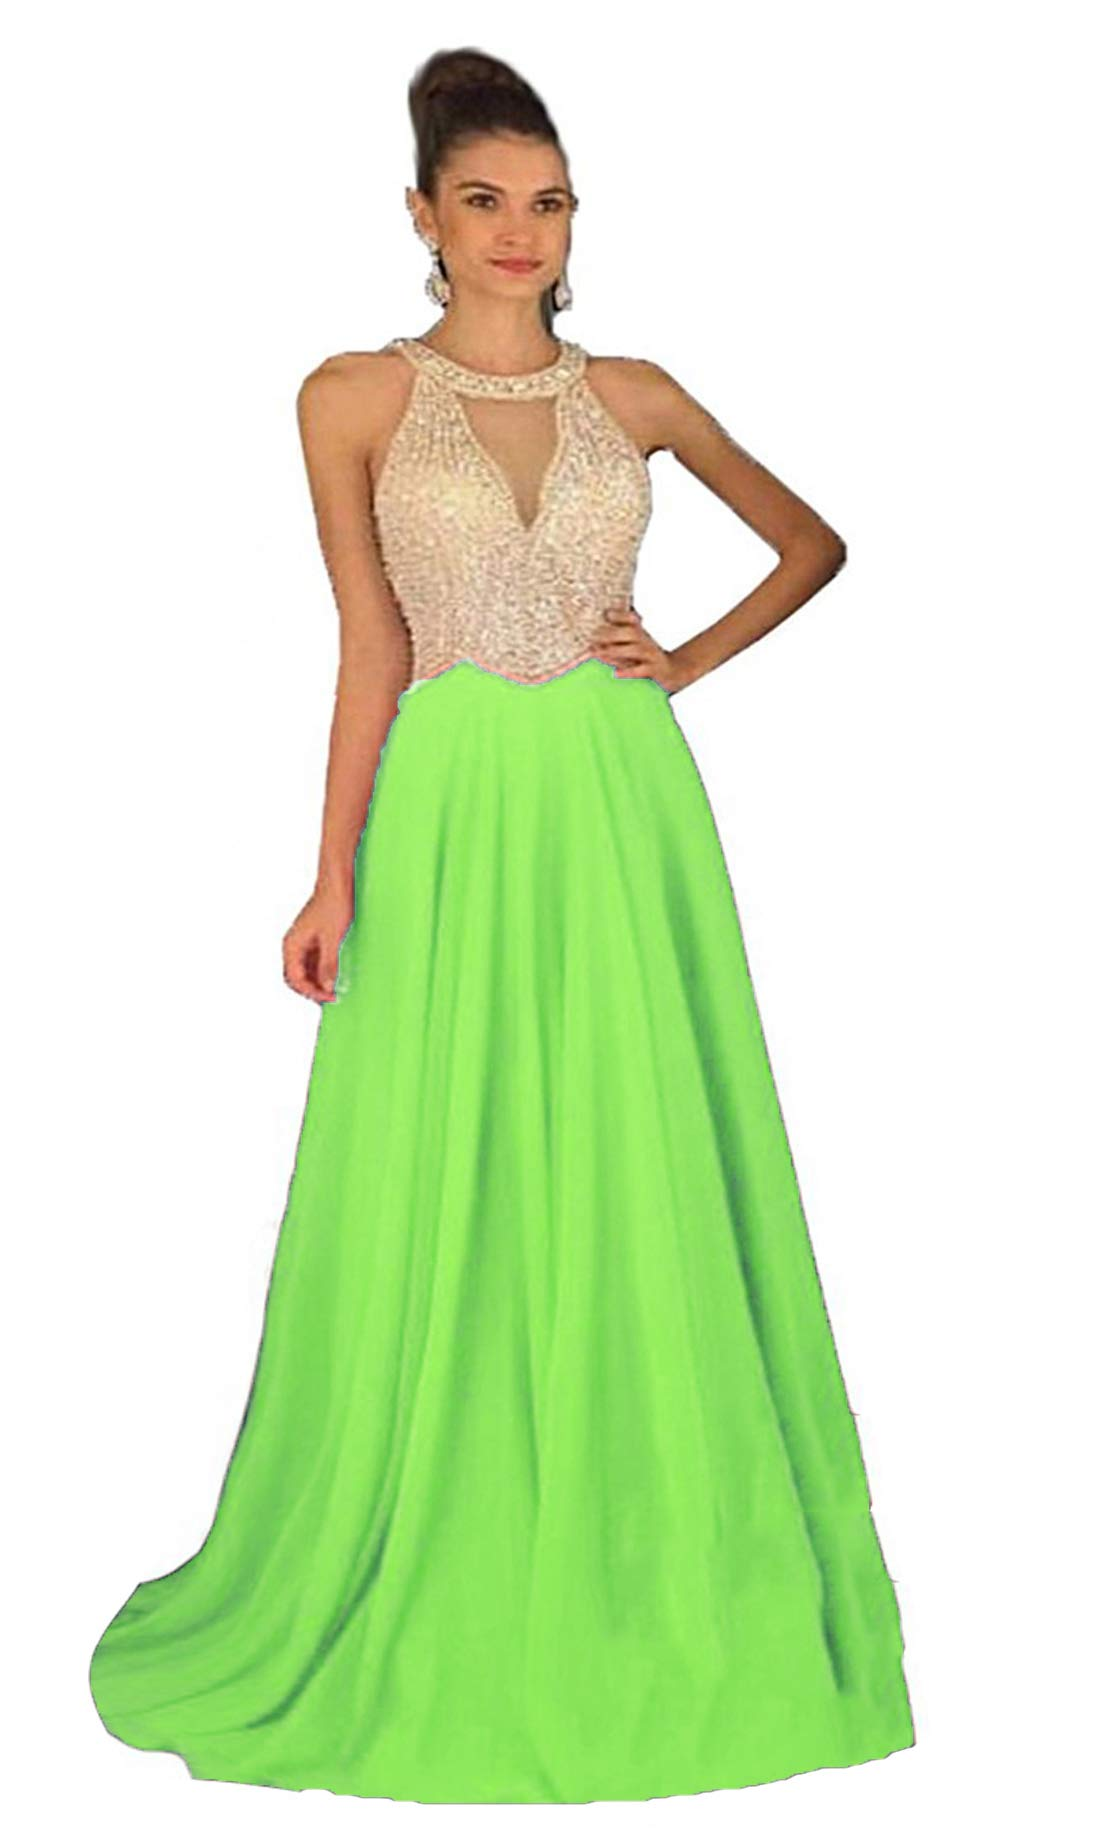 Fanciest Women's Crystal Beaded Prom Dresses 2020 Long Evening Gowns Formal Lime Green US6